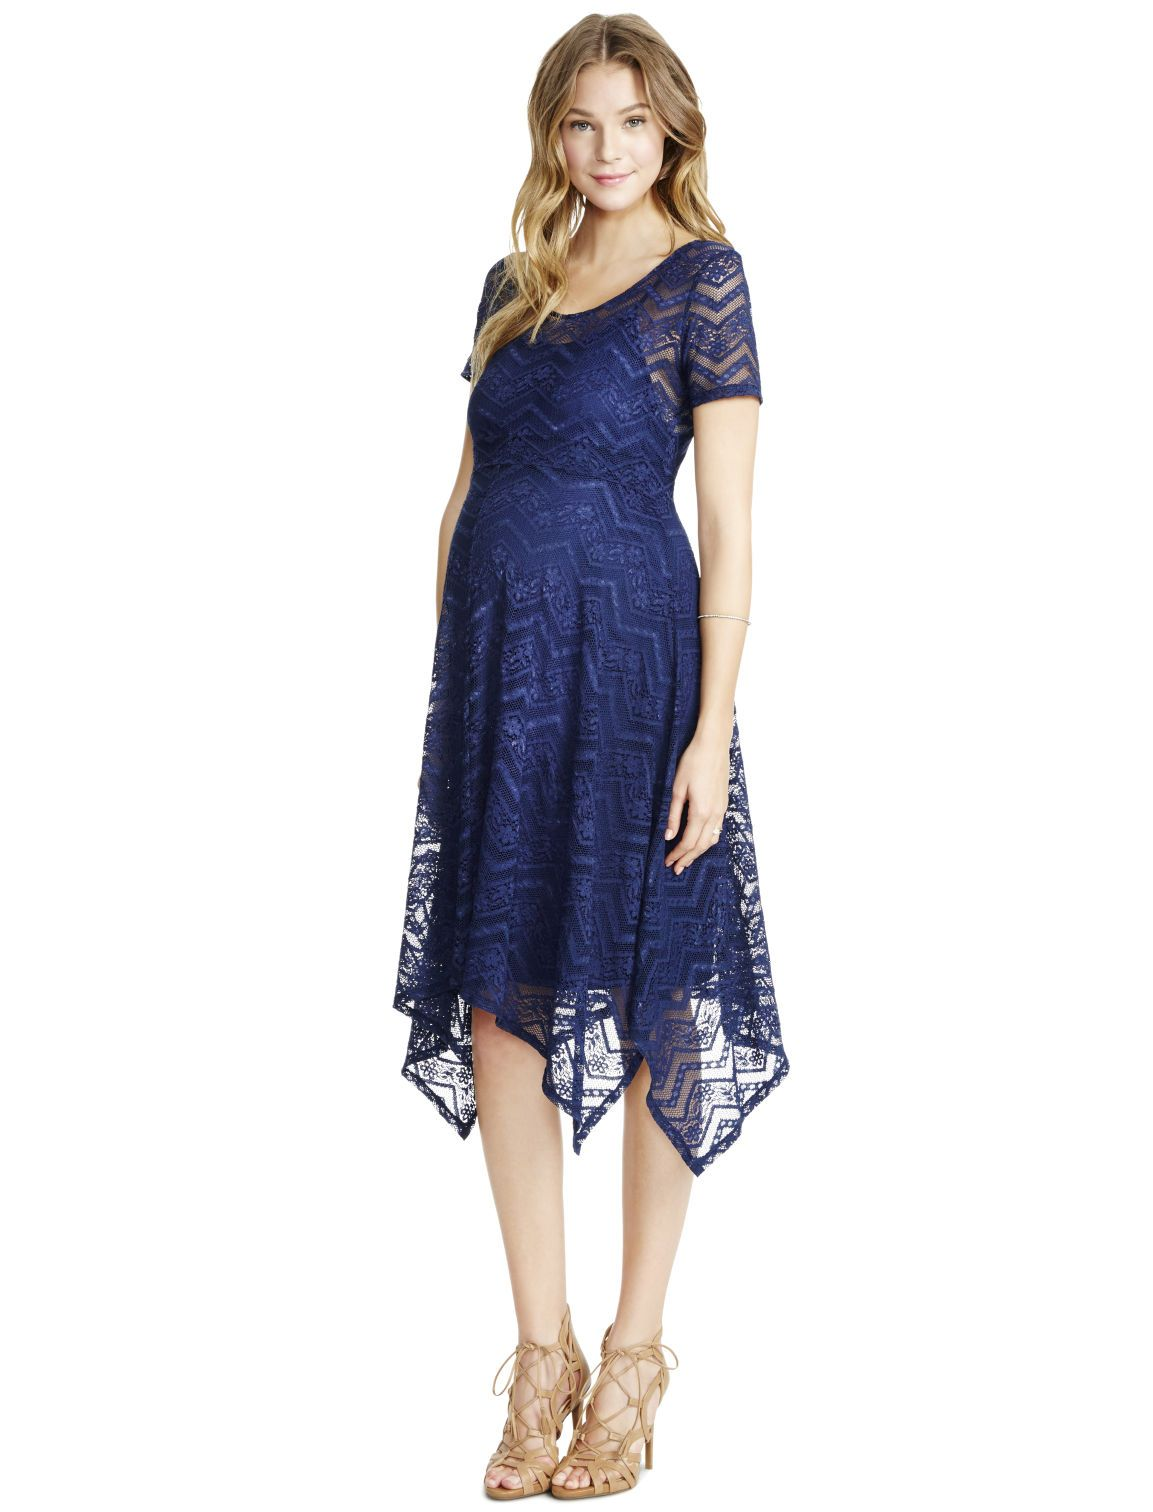 c9104b99e84 Motherhood Maternity Jessica Simpson Lace Hanky Hem Maternity Dress ...